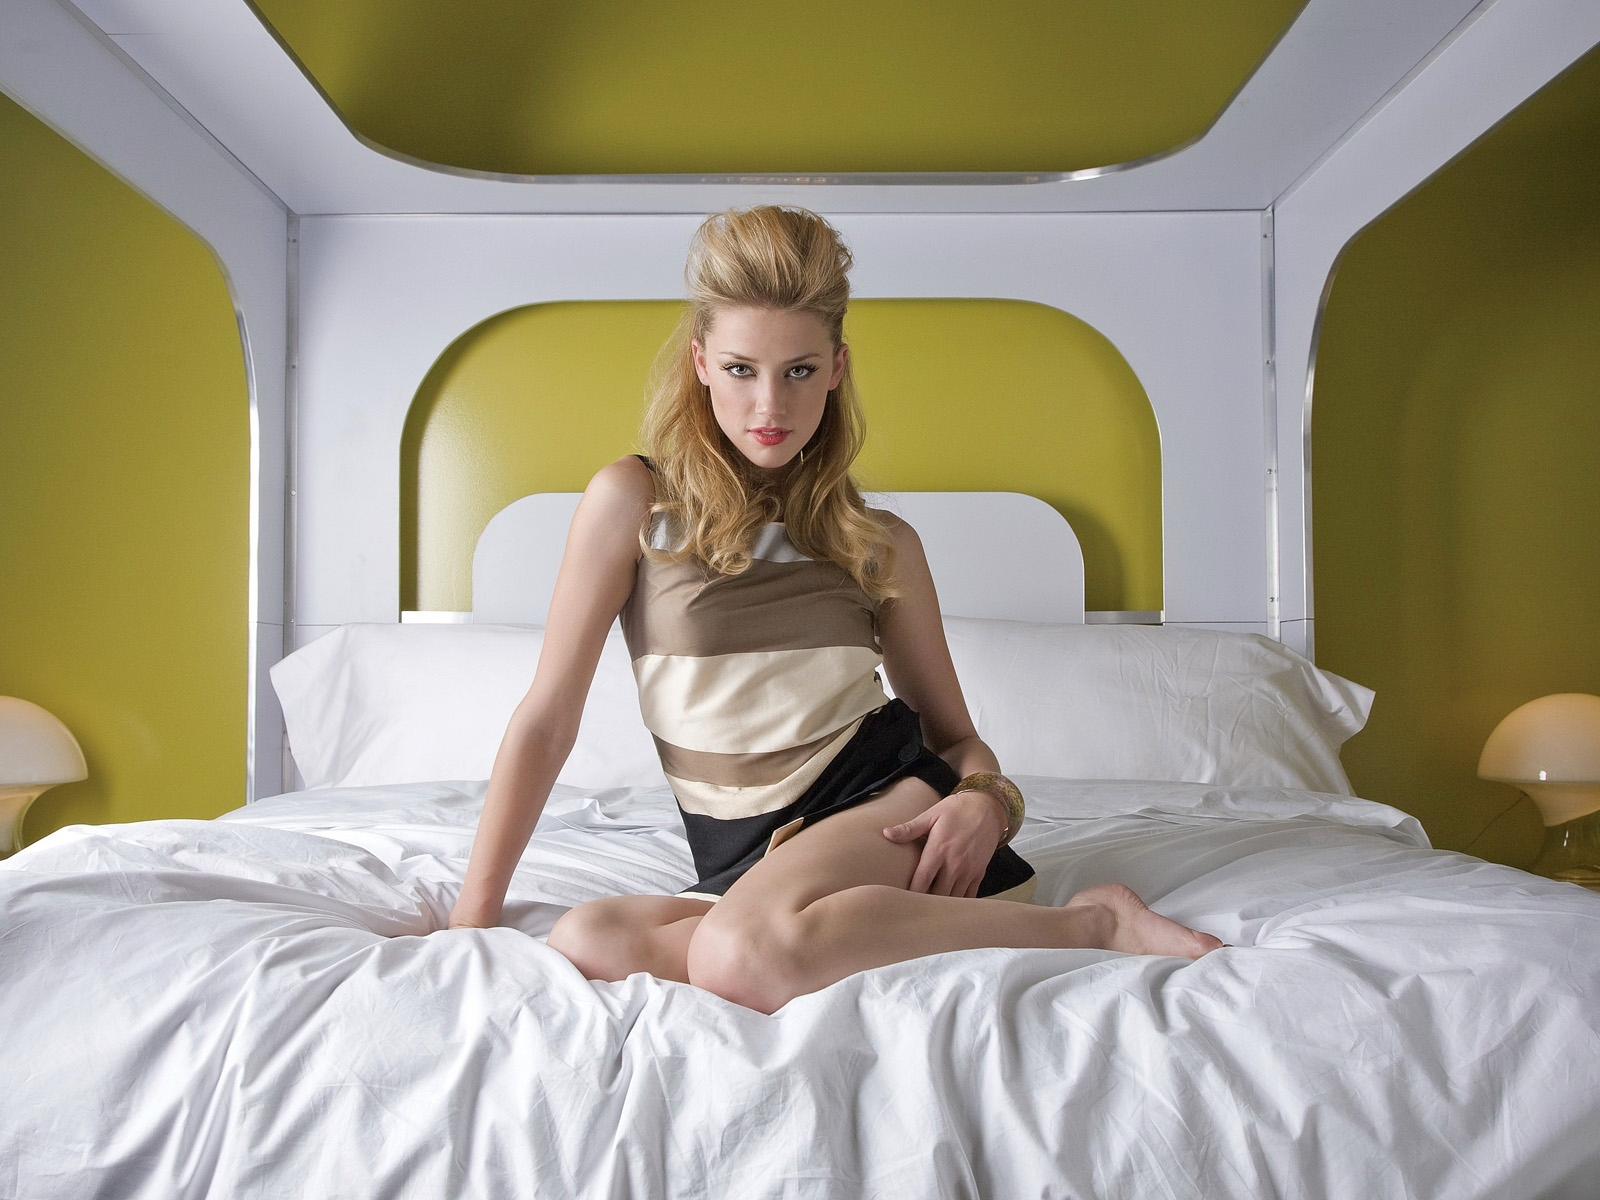 Amber Heard (Photoshoots) - Celebrity Pictures @ Your favorite Amber heard and gallery